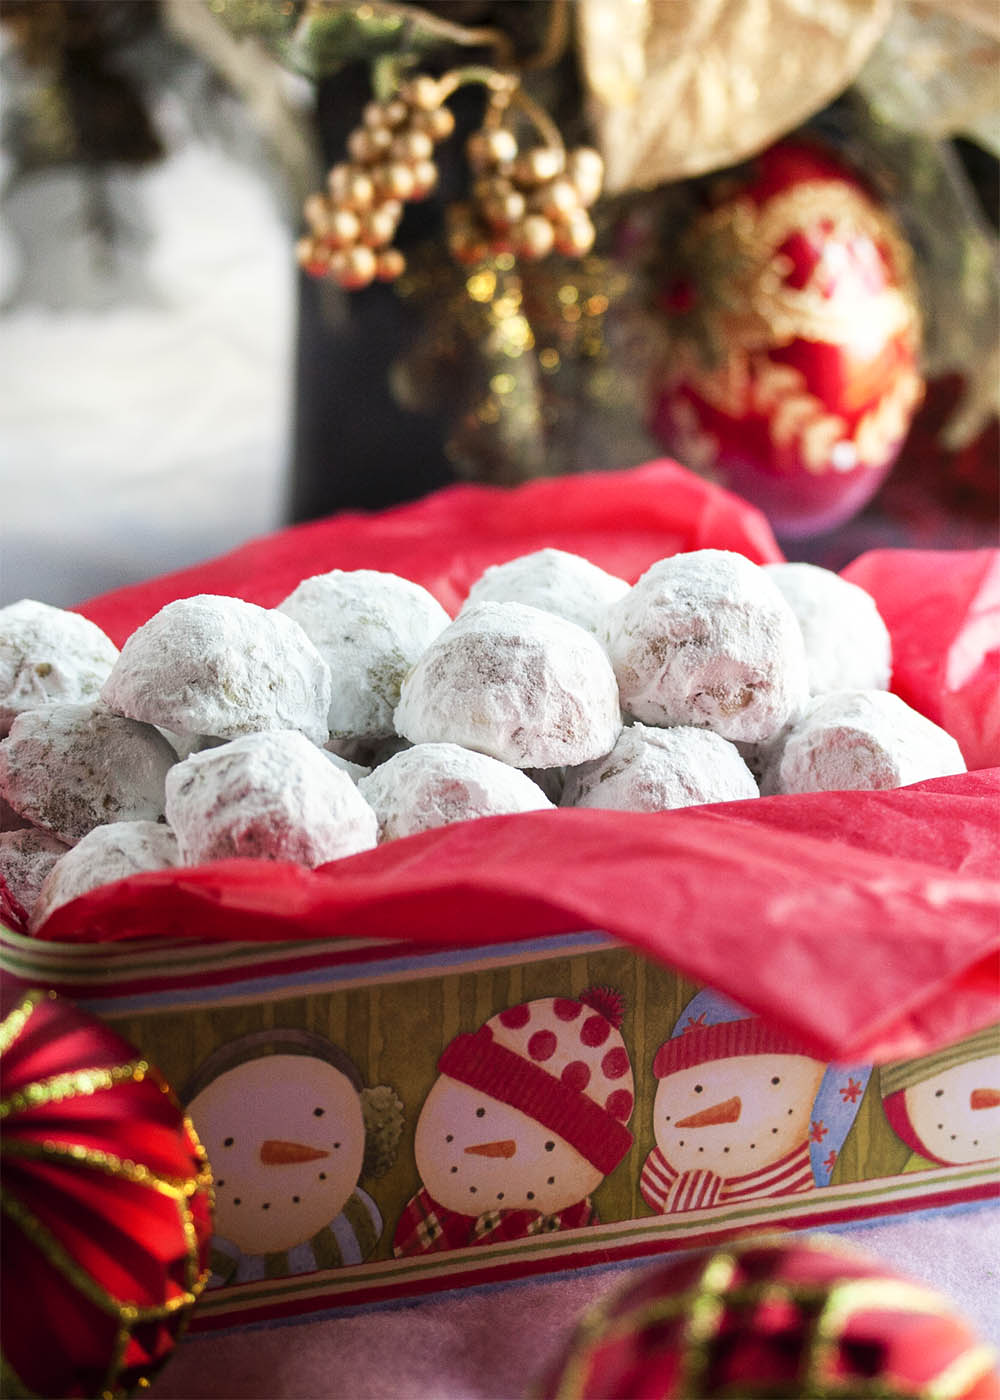 Pecan Snowball Cookies - These Pecan Snowball Cookies are melt-in-your-mouth tender, filled with ground and chopped pecans, and covered in powdered sugar. Whether you call them Snowballs or Russian Tea Cakes or Italian Wedding Cookies, it's not Christmas without them. | justalittlebitofbacon.com